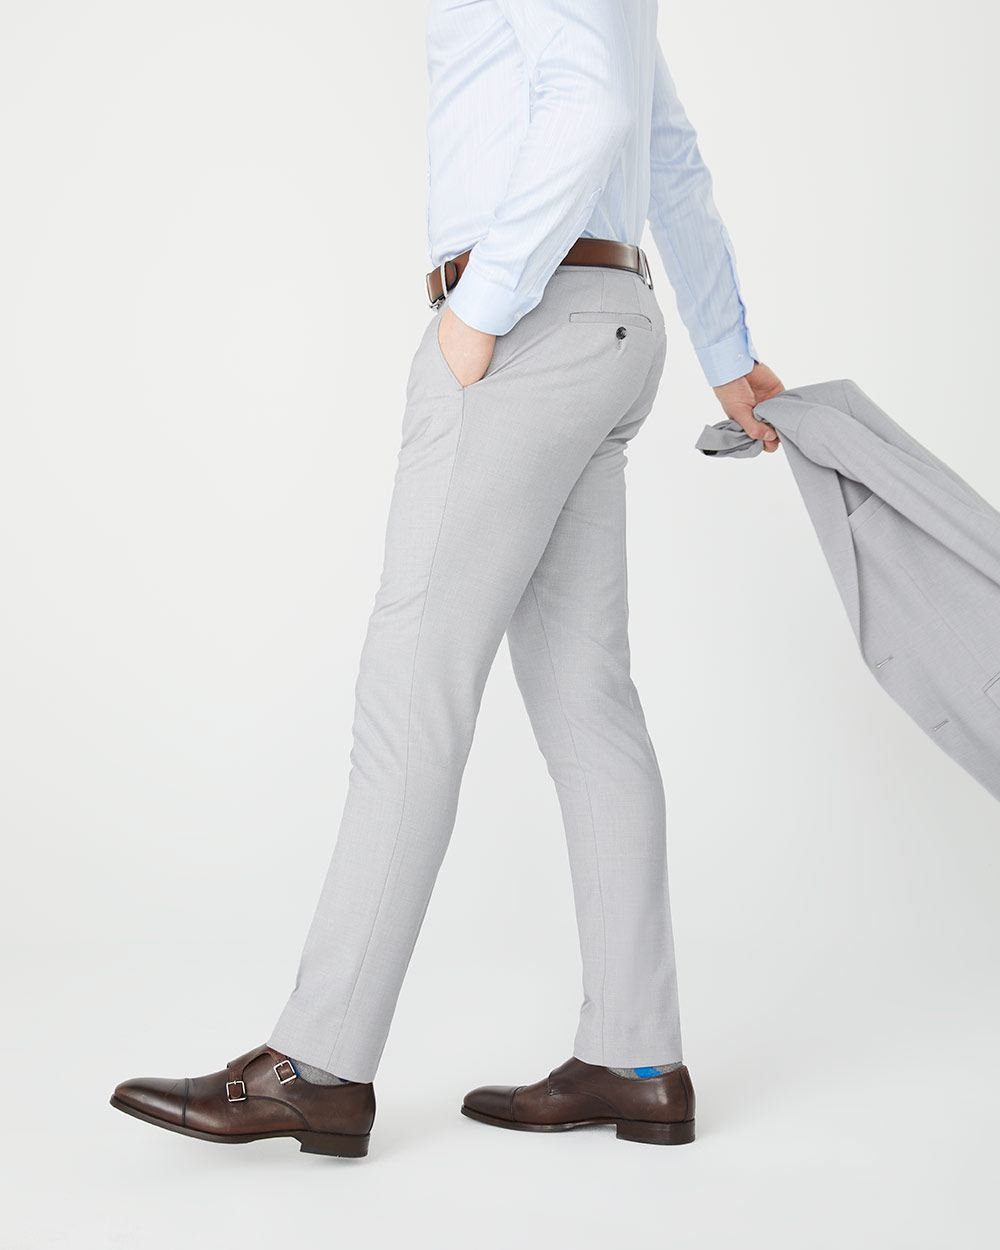 Pantalon de complet Essentiel extensible Coupe étroite Gris pâle chiné - Long